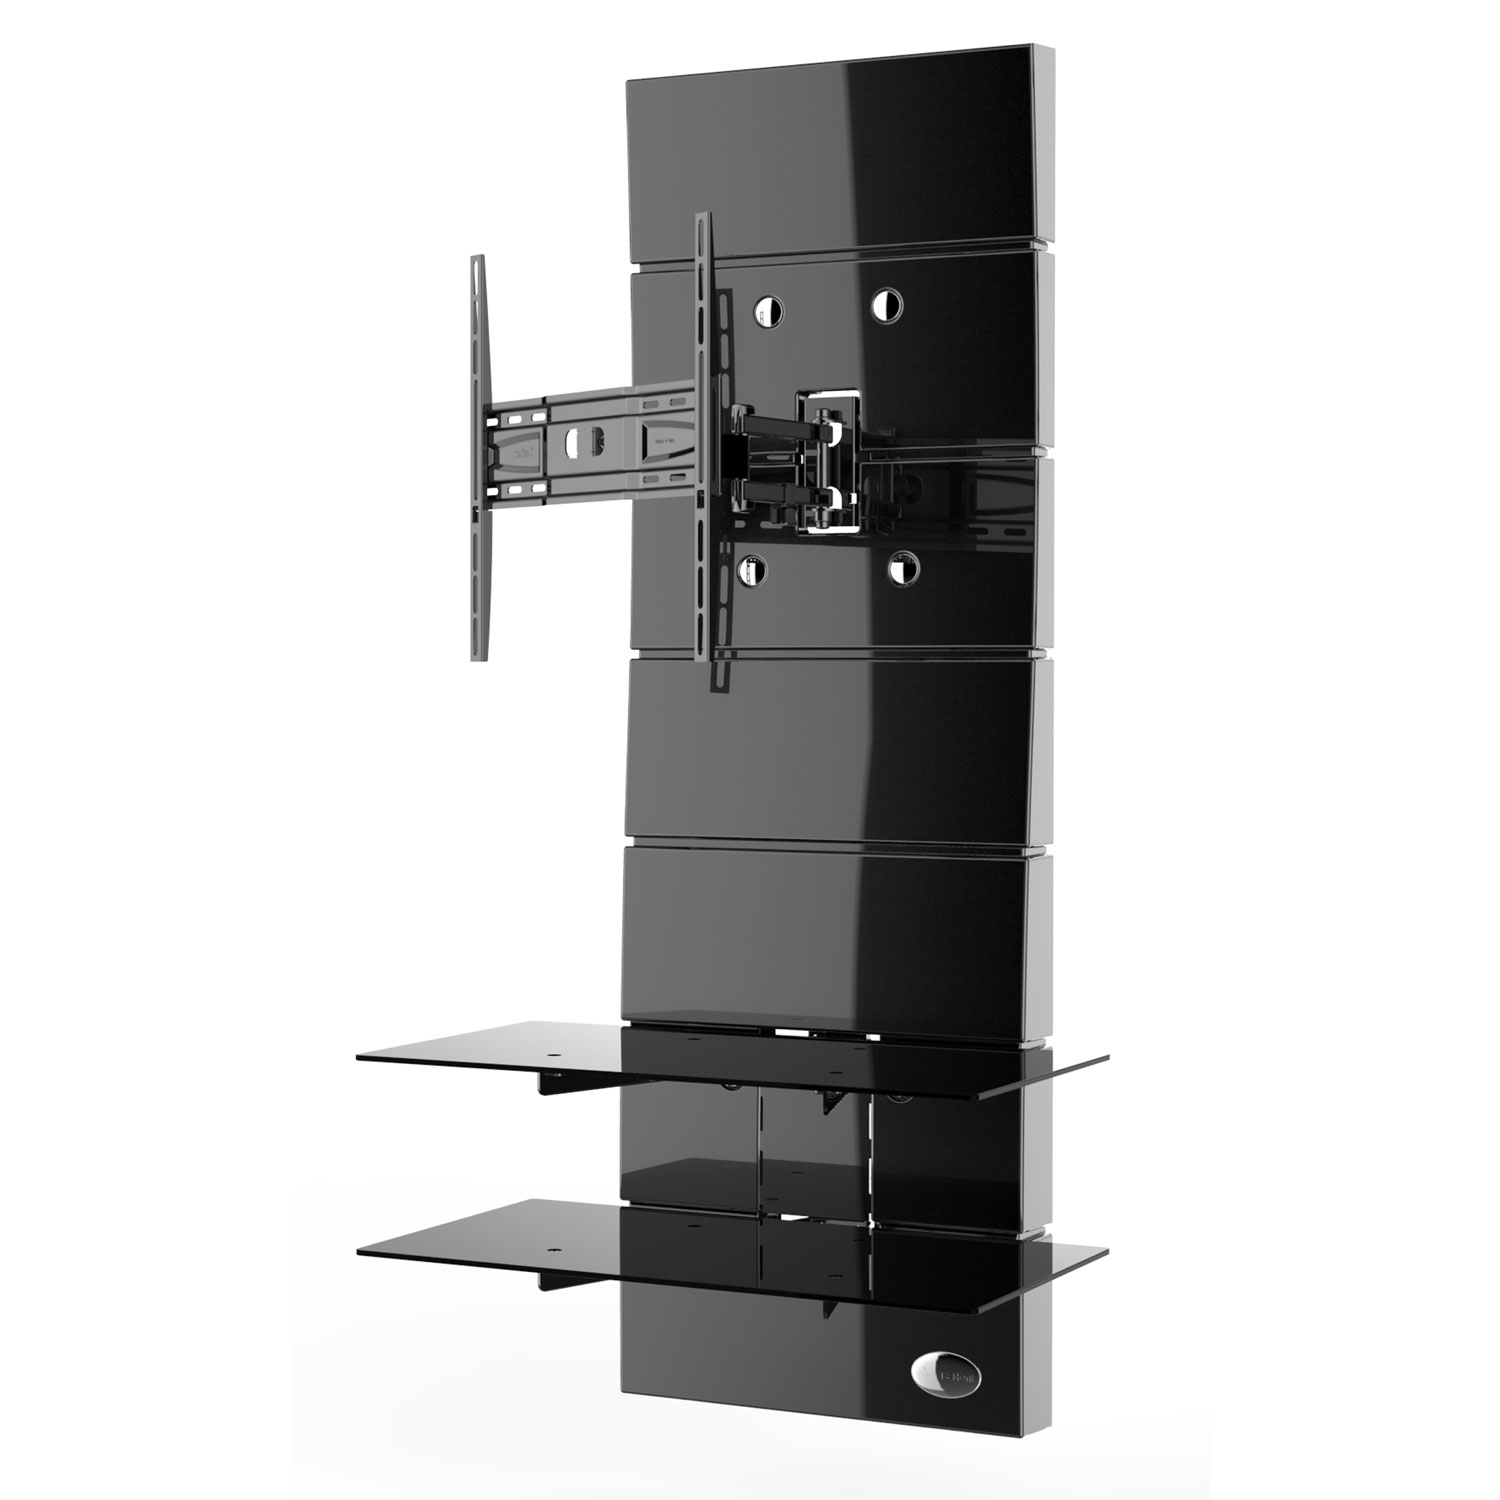 meliconi ghost design 3000 rotation noir meuble tv meliconi sur ldlc. Black Bedroom Furniture Sets. Home Design Ideas